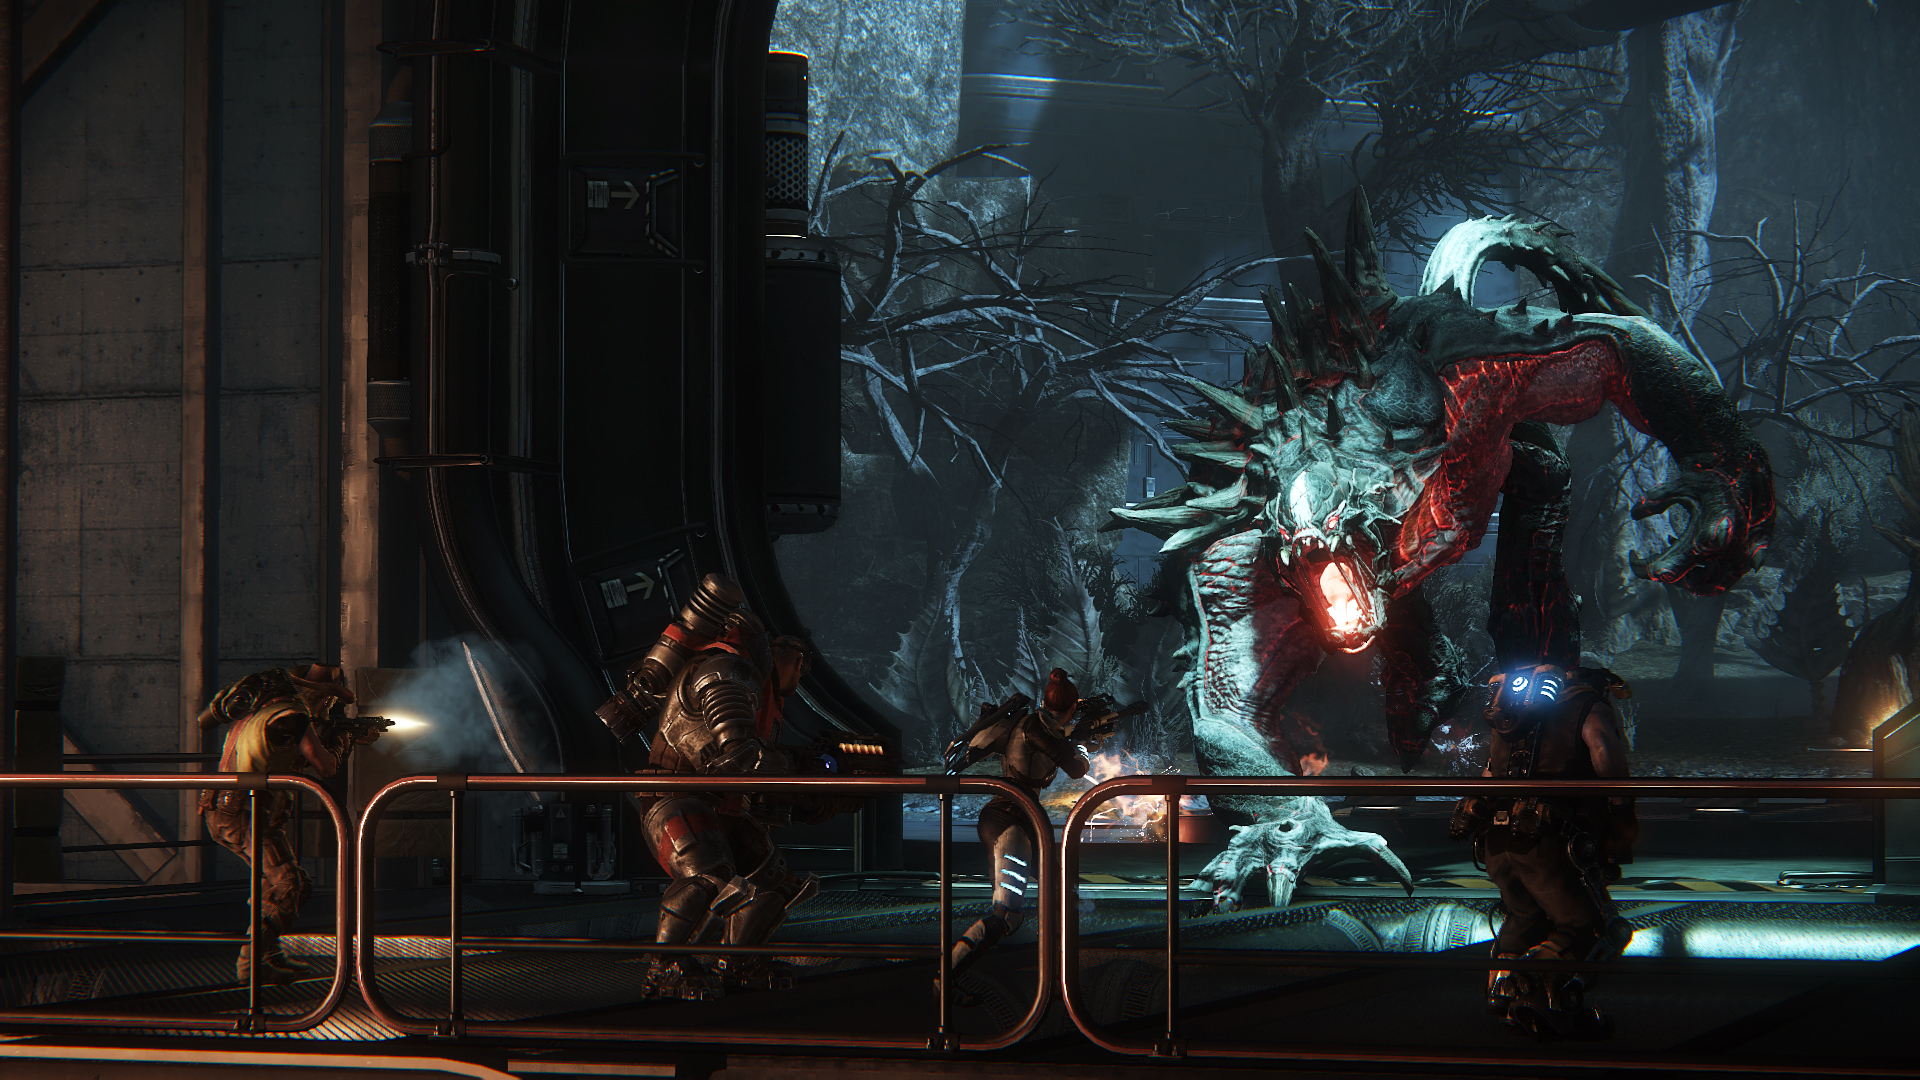 evolve stage 2 free-to-play